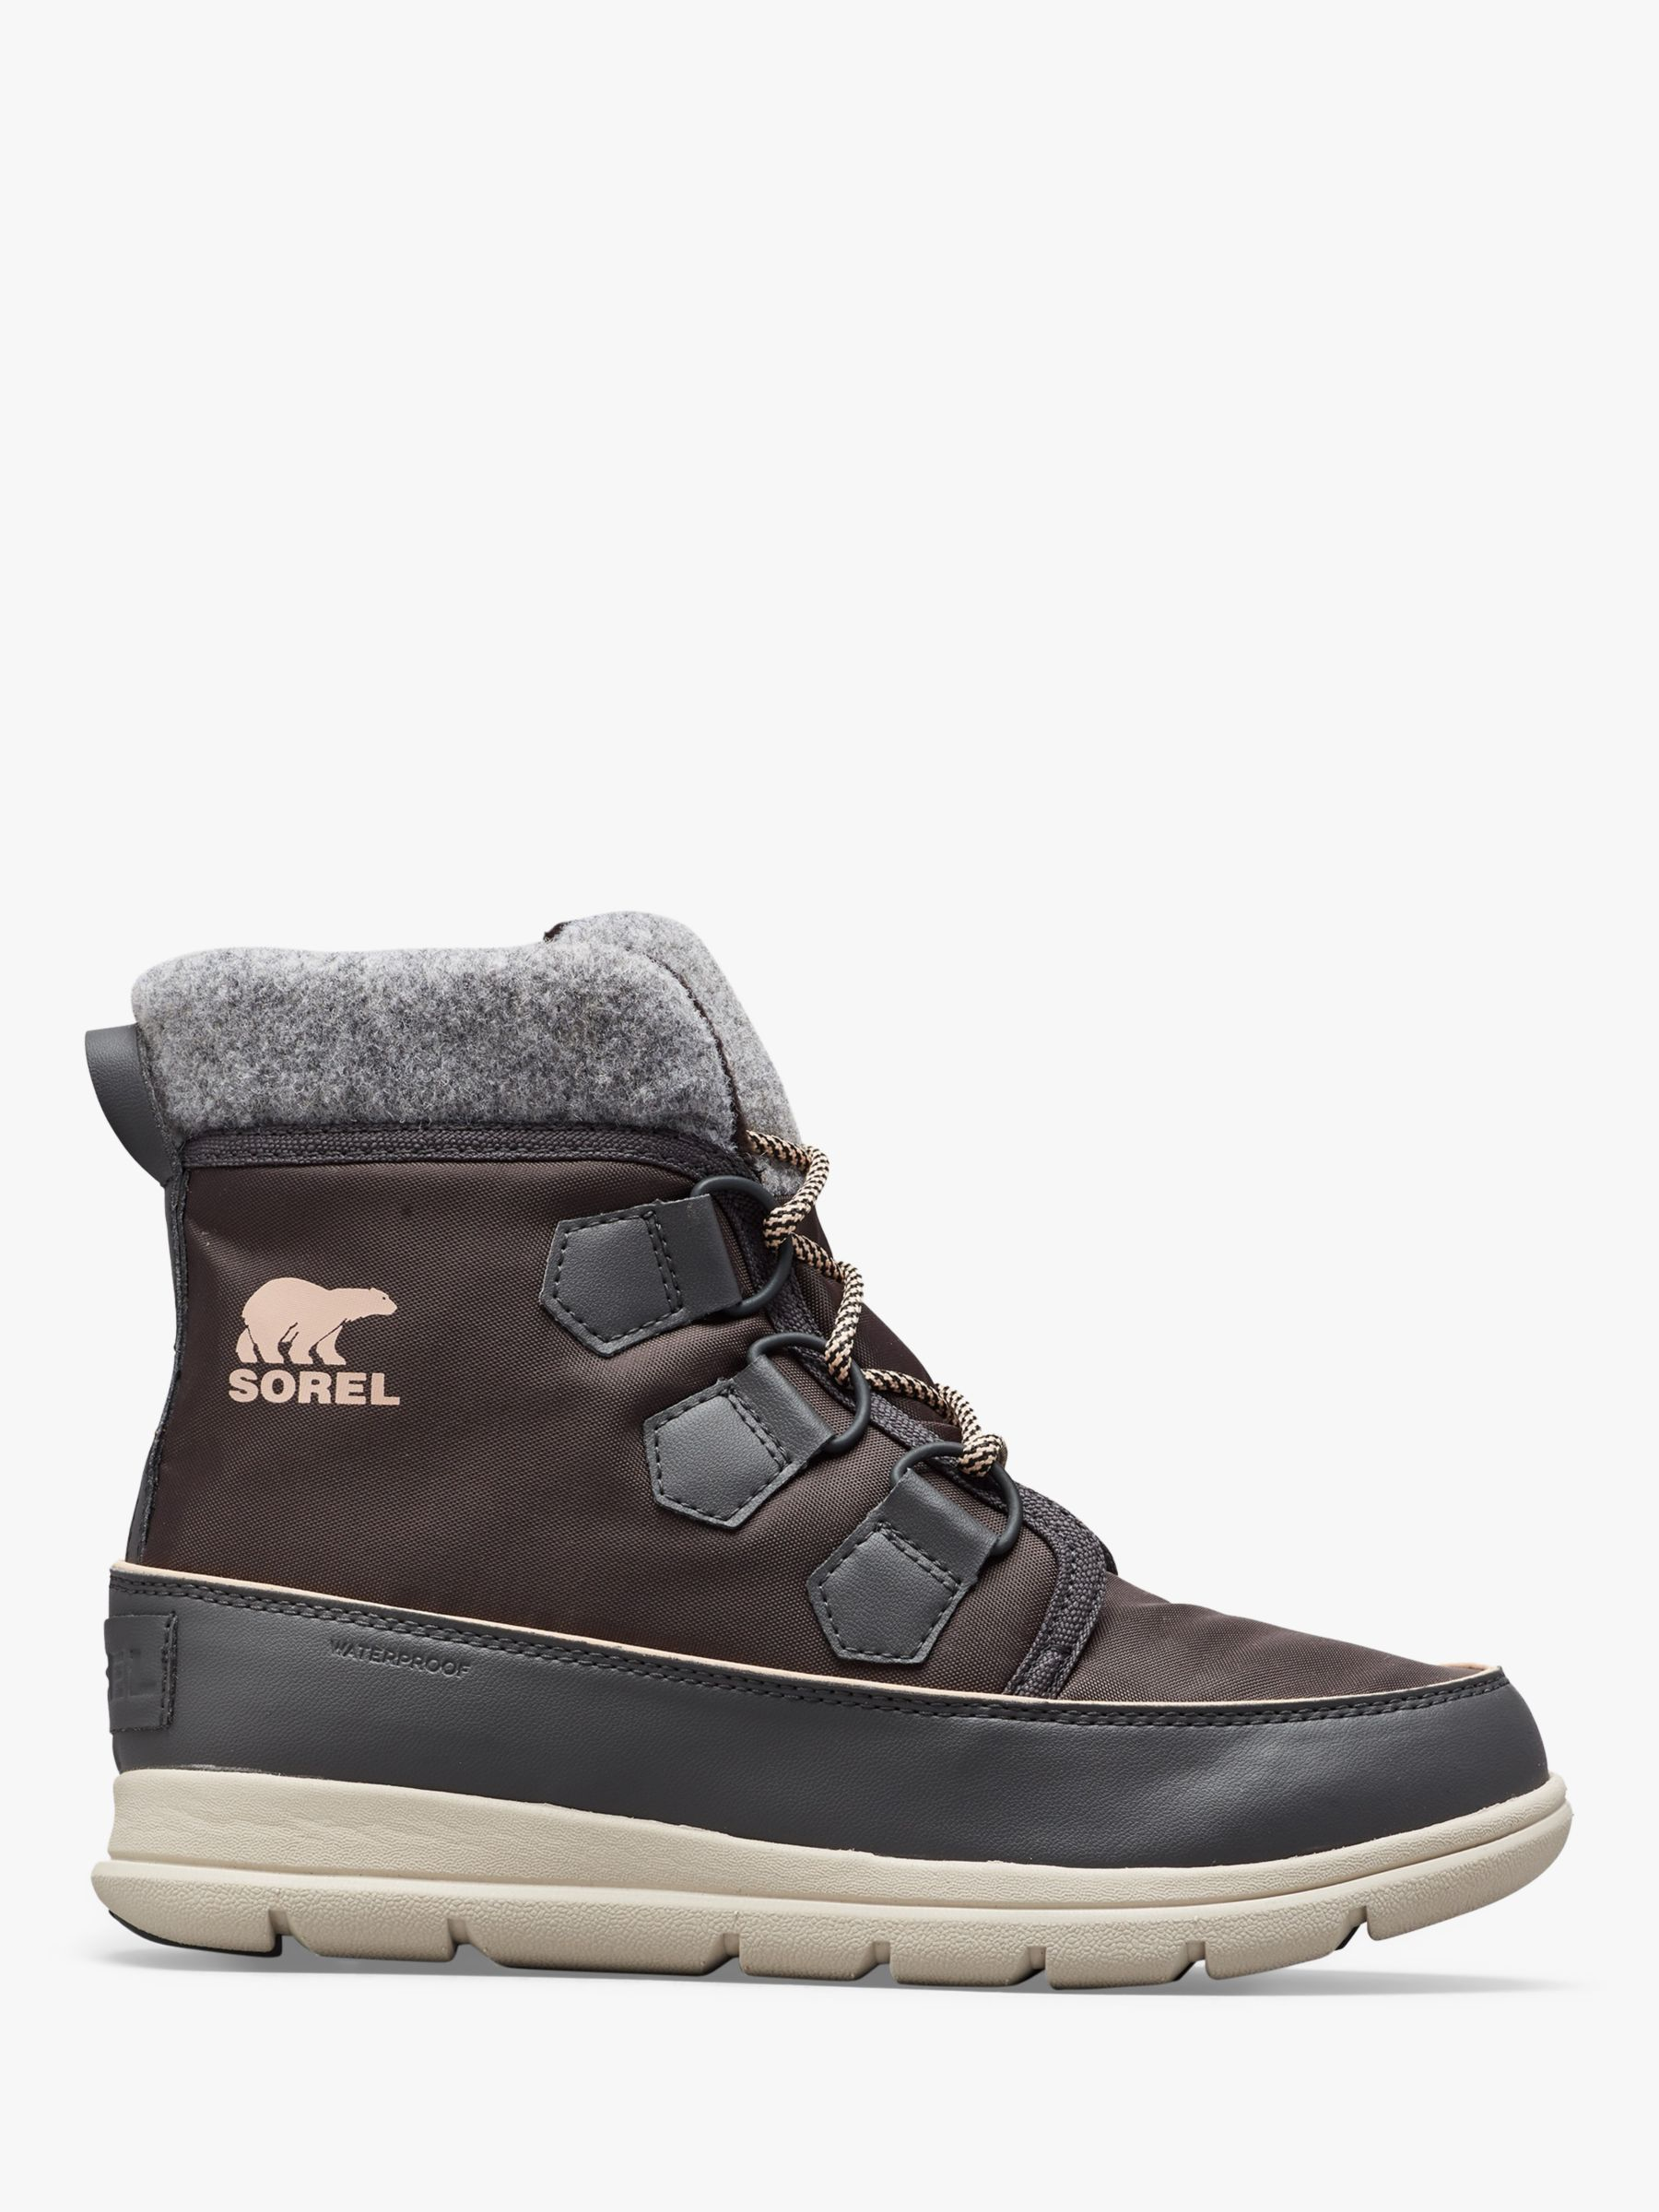 Sorel Sorel Explorer Lace Up Ankle Snow Boots, Dark Slate